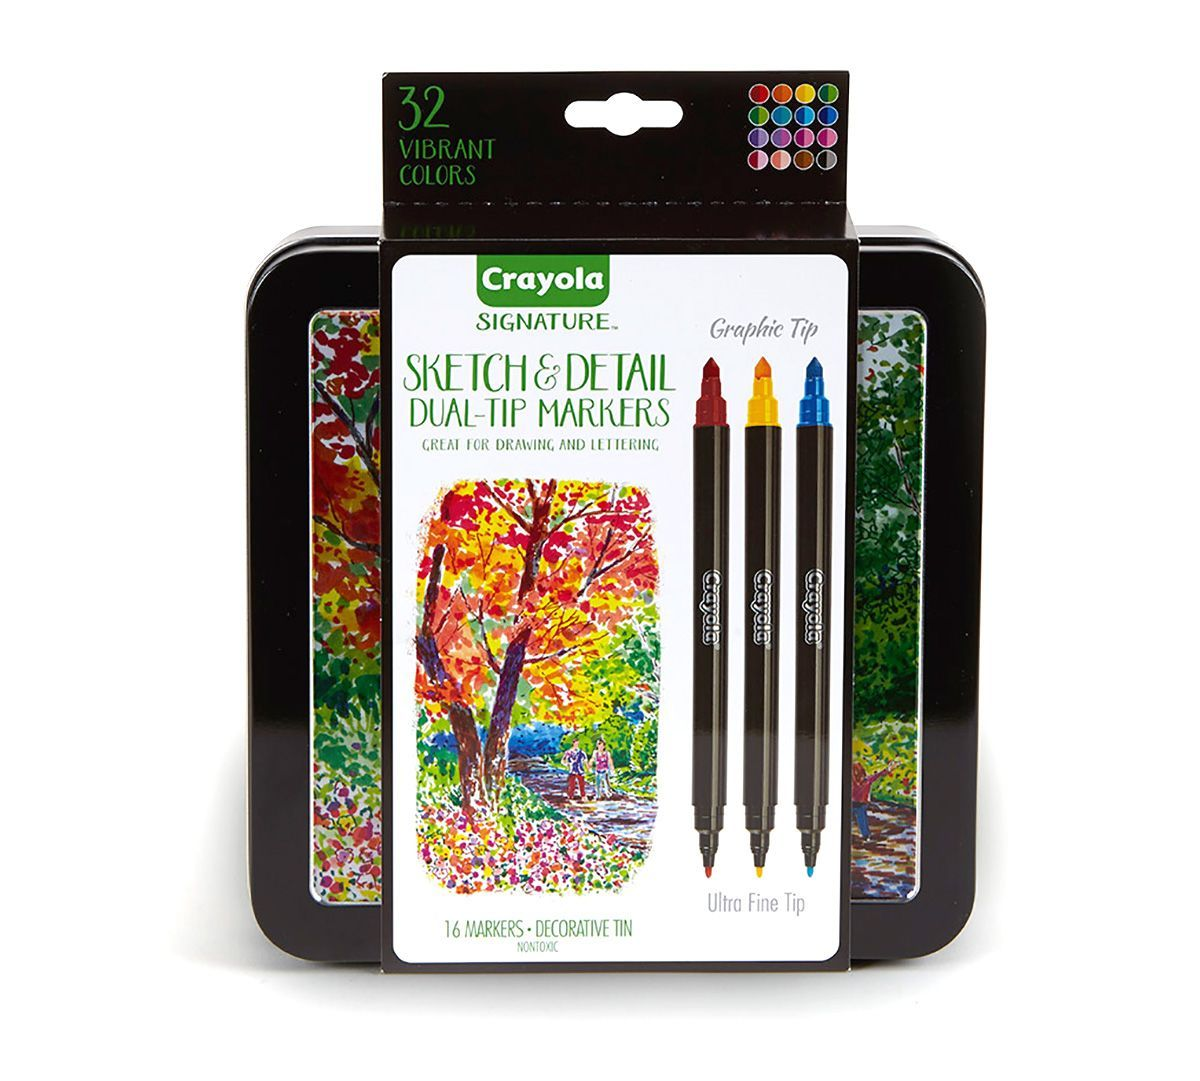 Signature Sketch Detail Dual Ended Markers 16 Count I